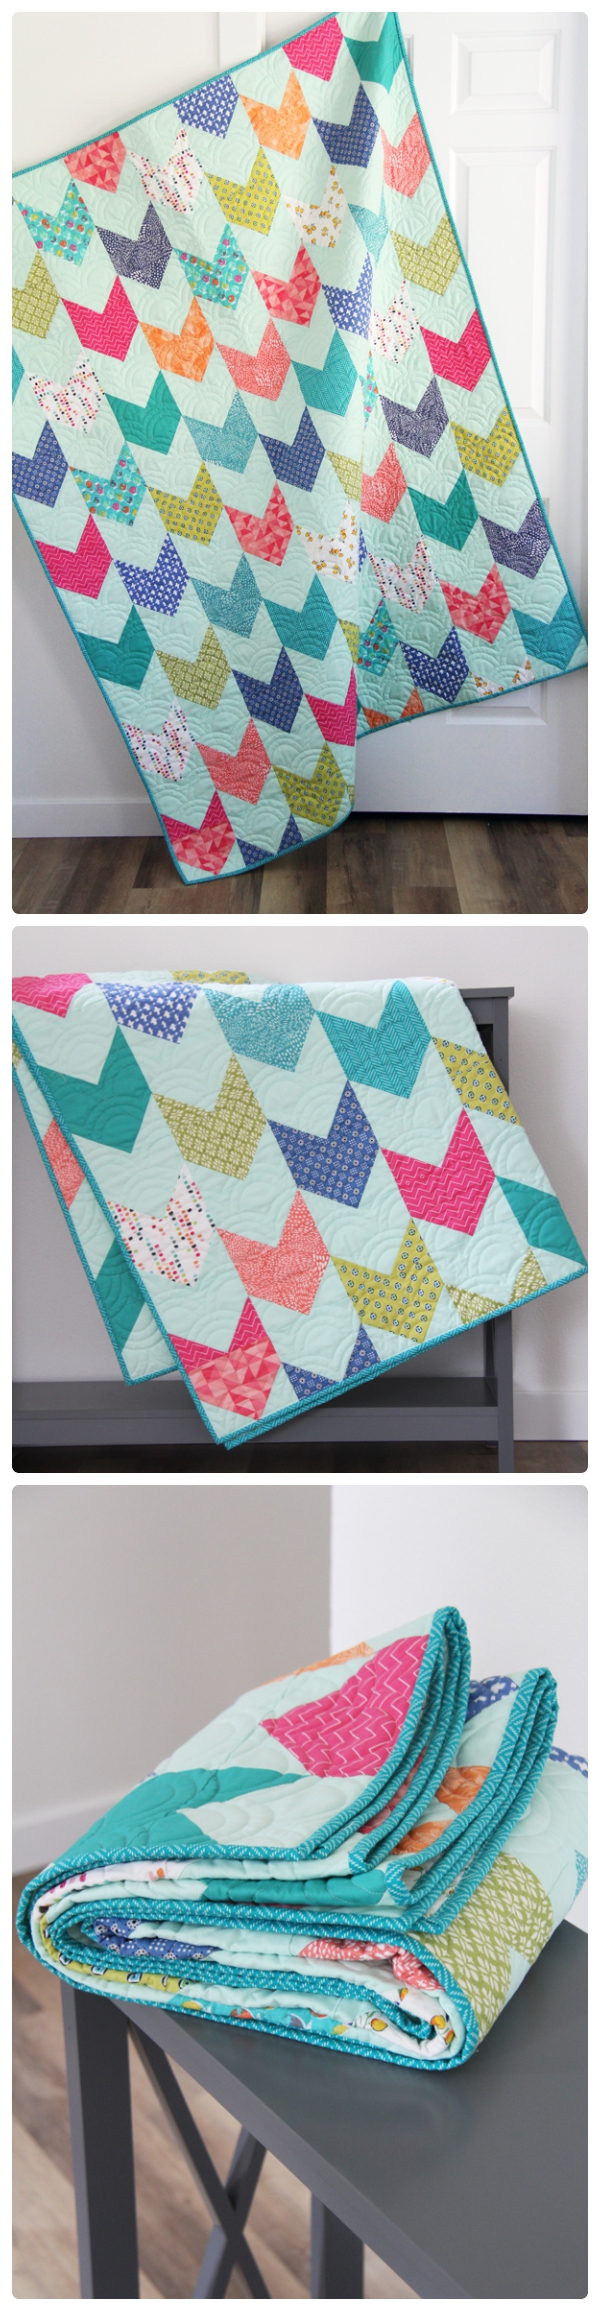 Aqua One Way Quilt and Pattern